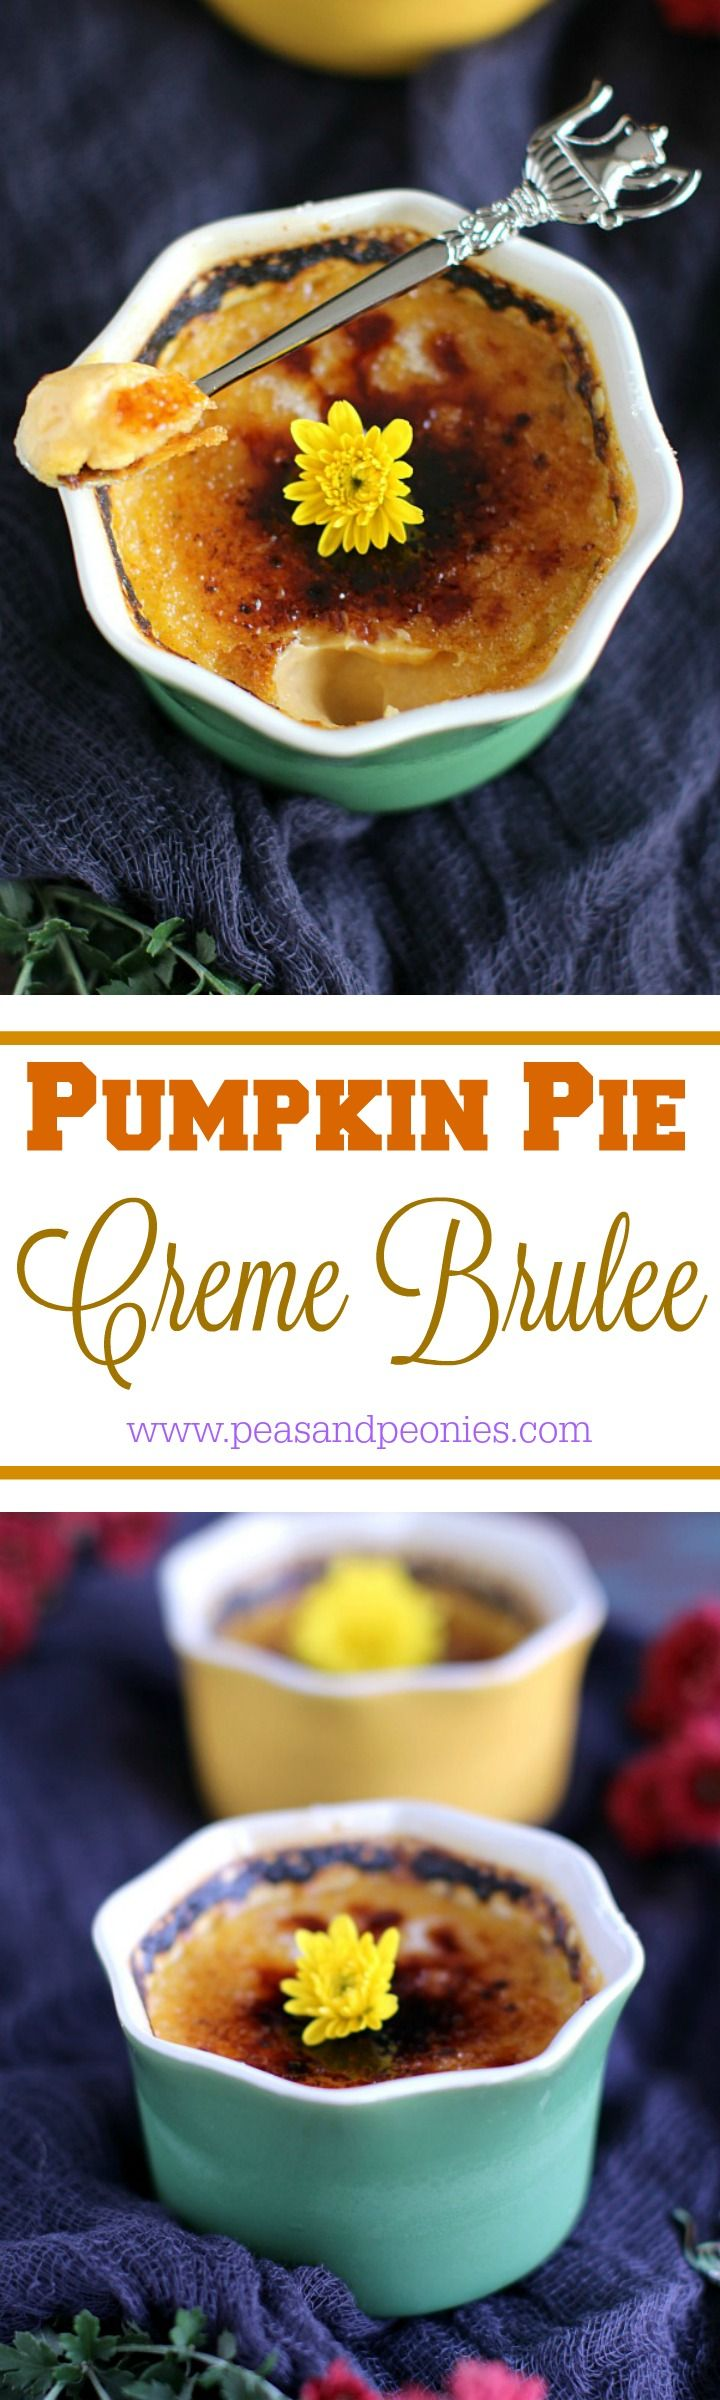 1000+ ideas about Pumpkin Creme Brulee on Pinterest ...